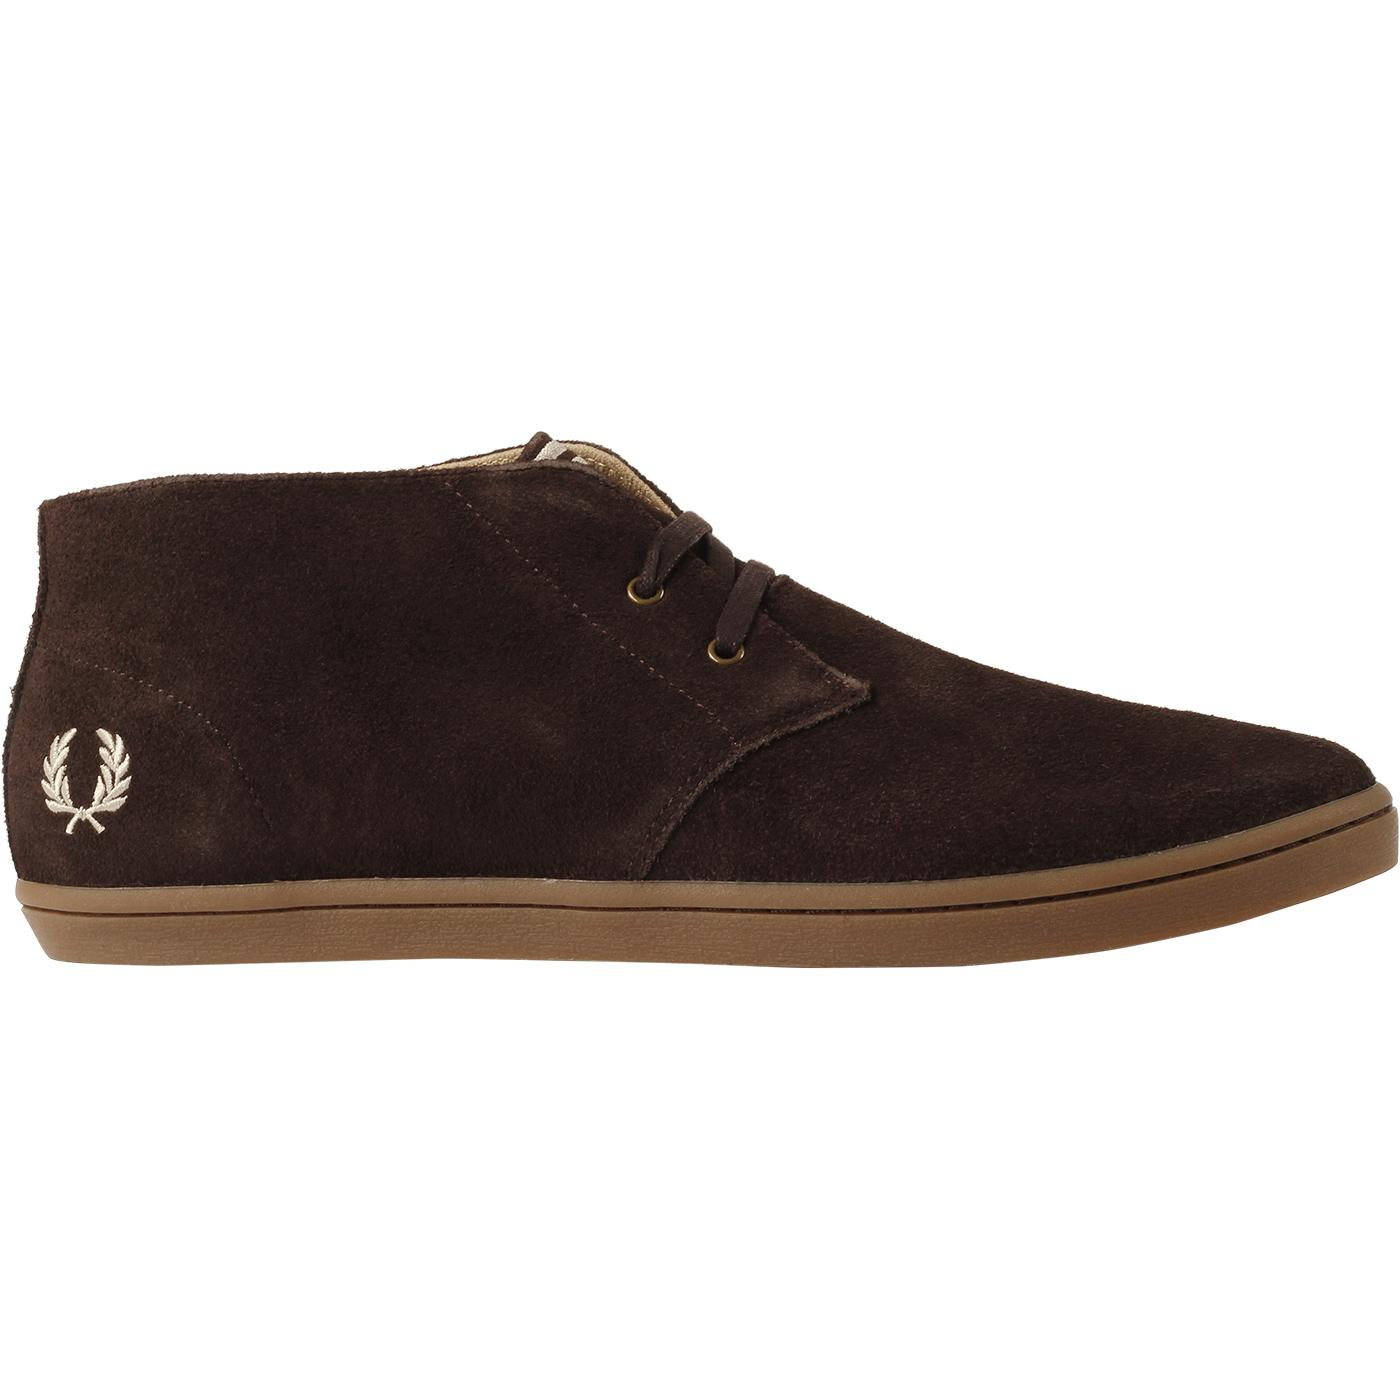 Byron FRED PERRY Mod Mid Suede Desert Boots (DB)